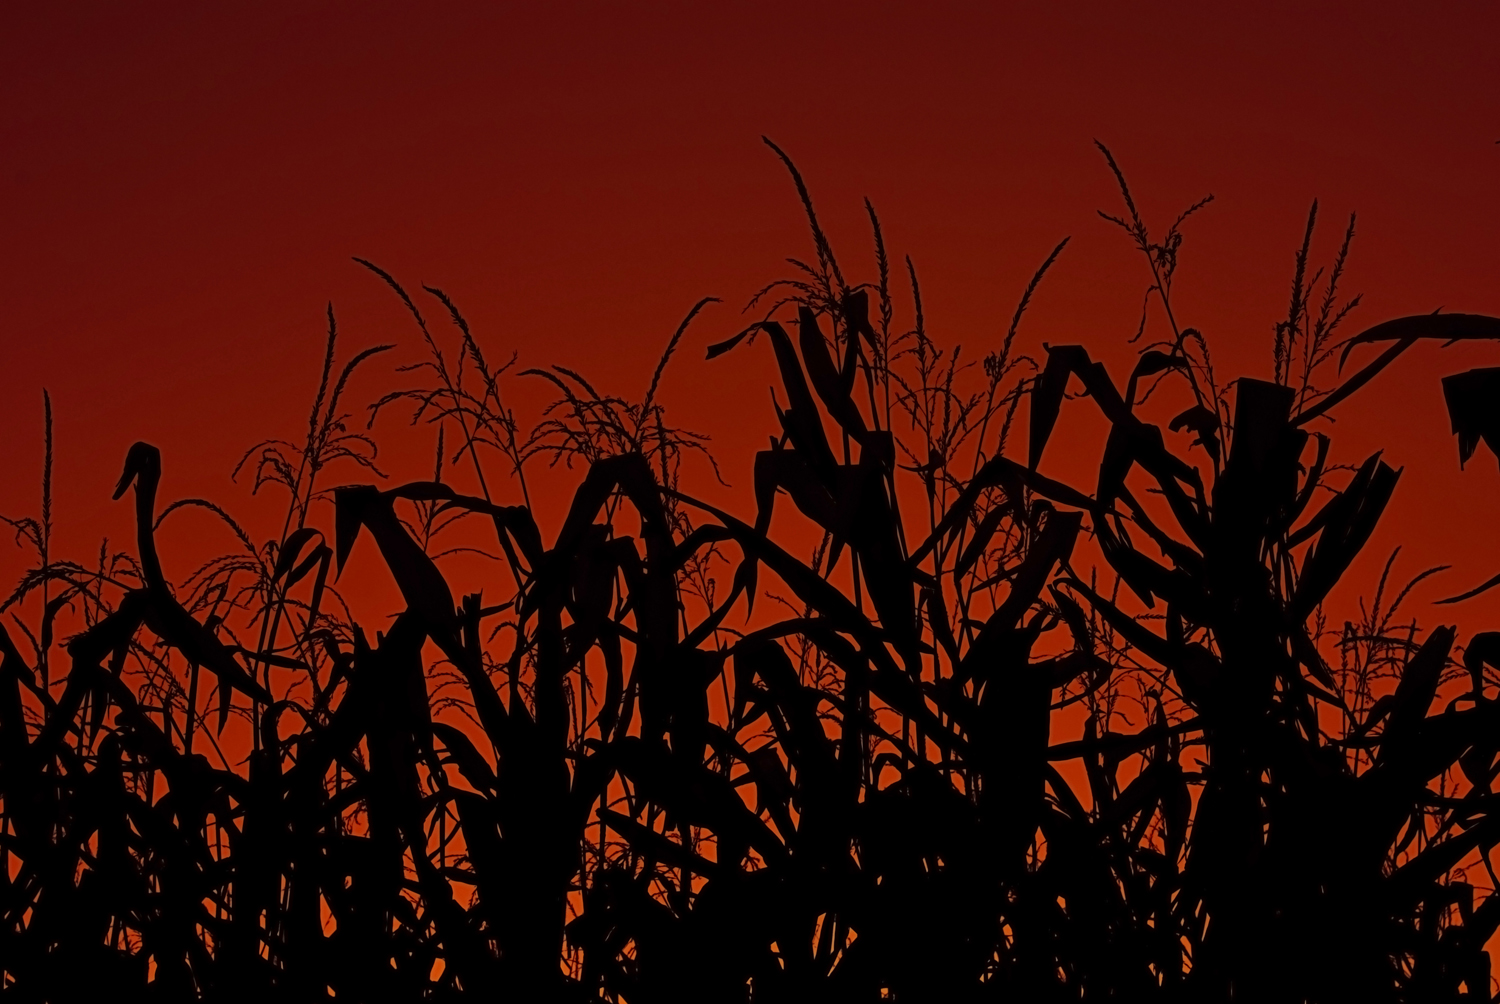 File:Corn stalks at sunset.jpg - Wikimedia Commons